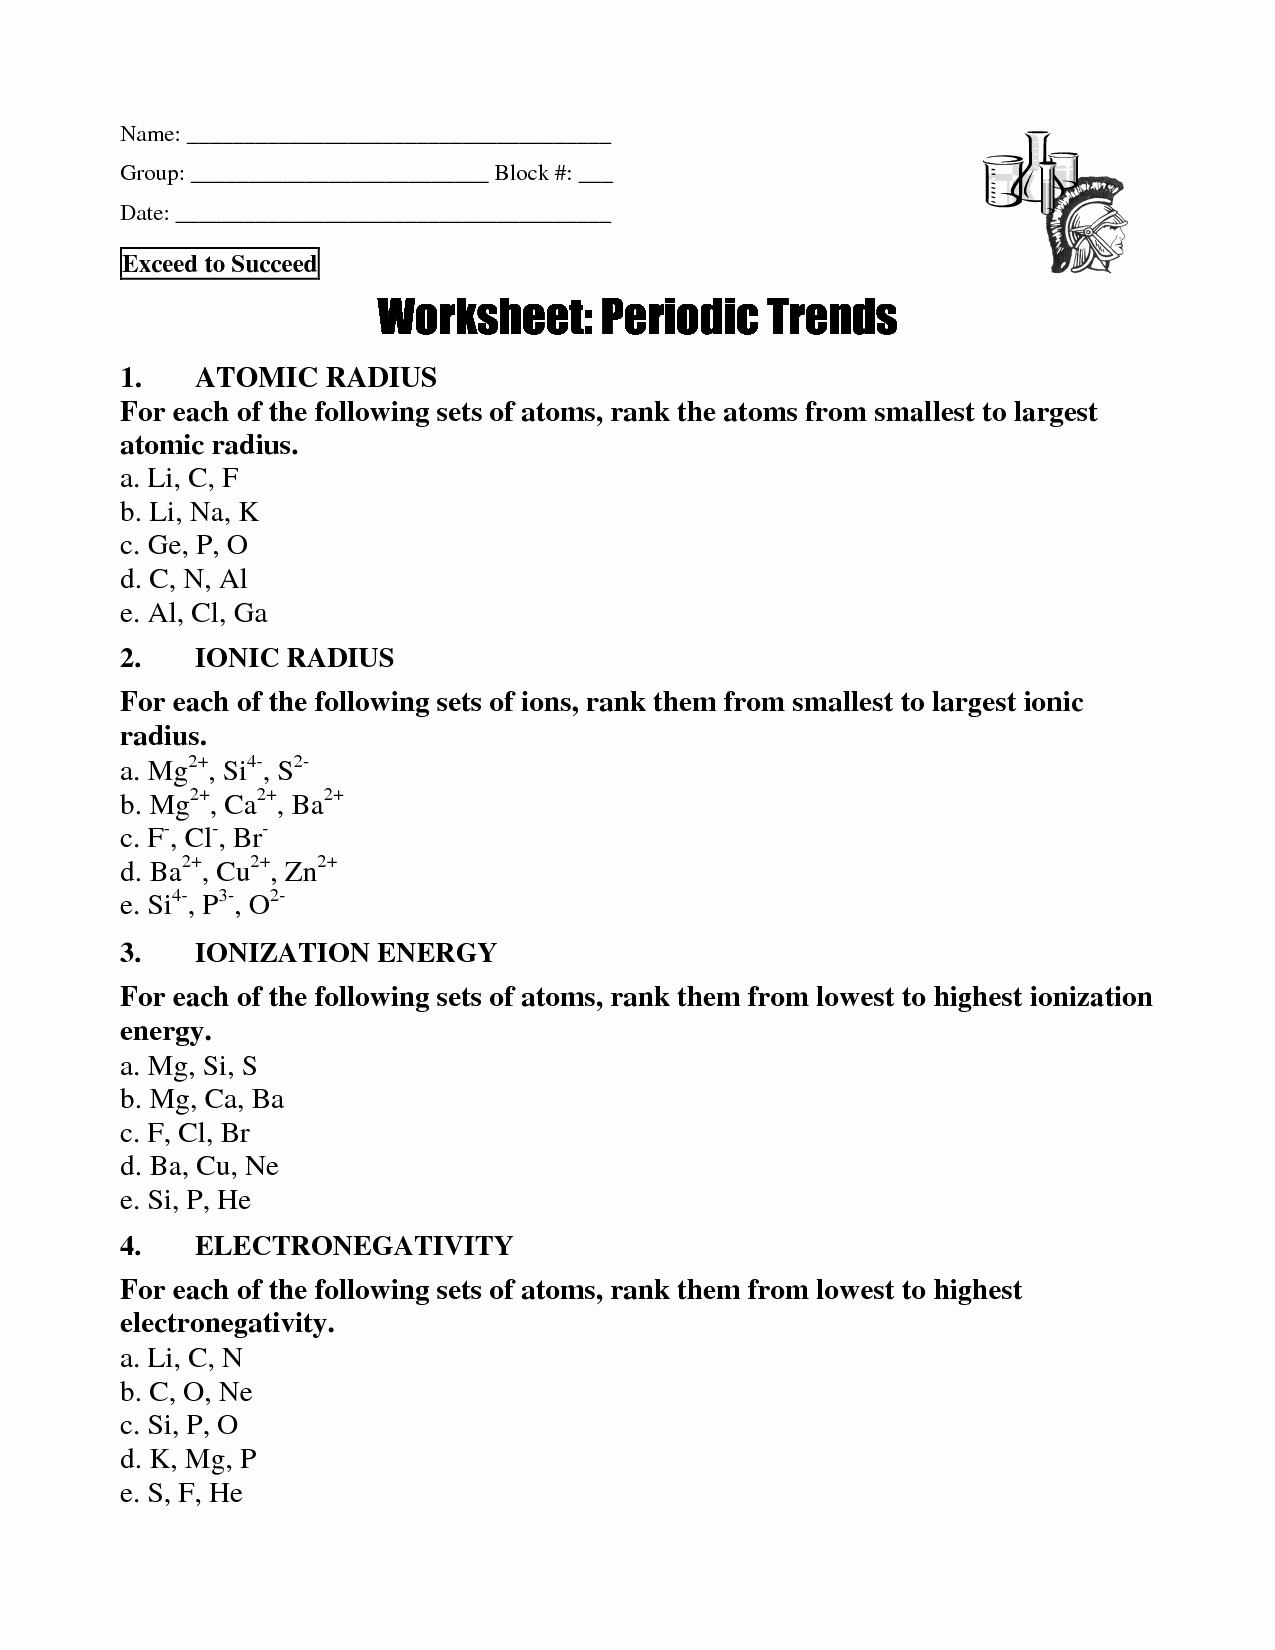 Periodic Trends Worksheet Answer Key Lovely 20 Best Of Periodic Trends Worksheet Answers Key